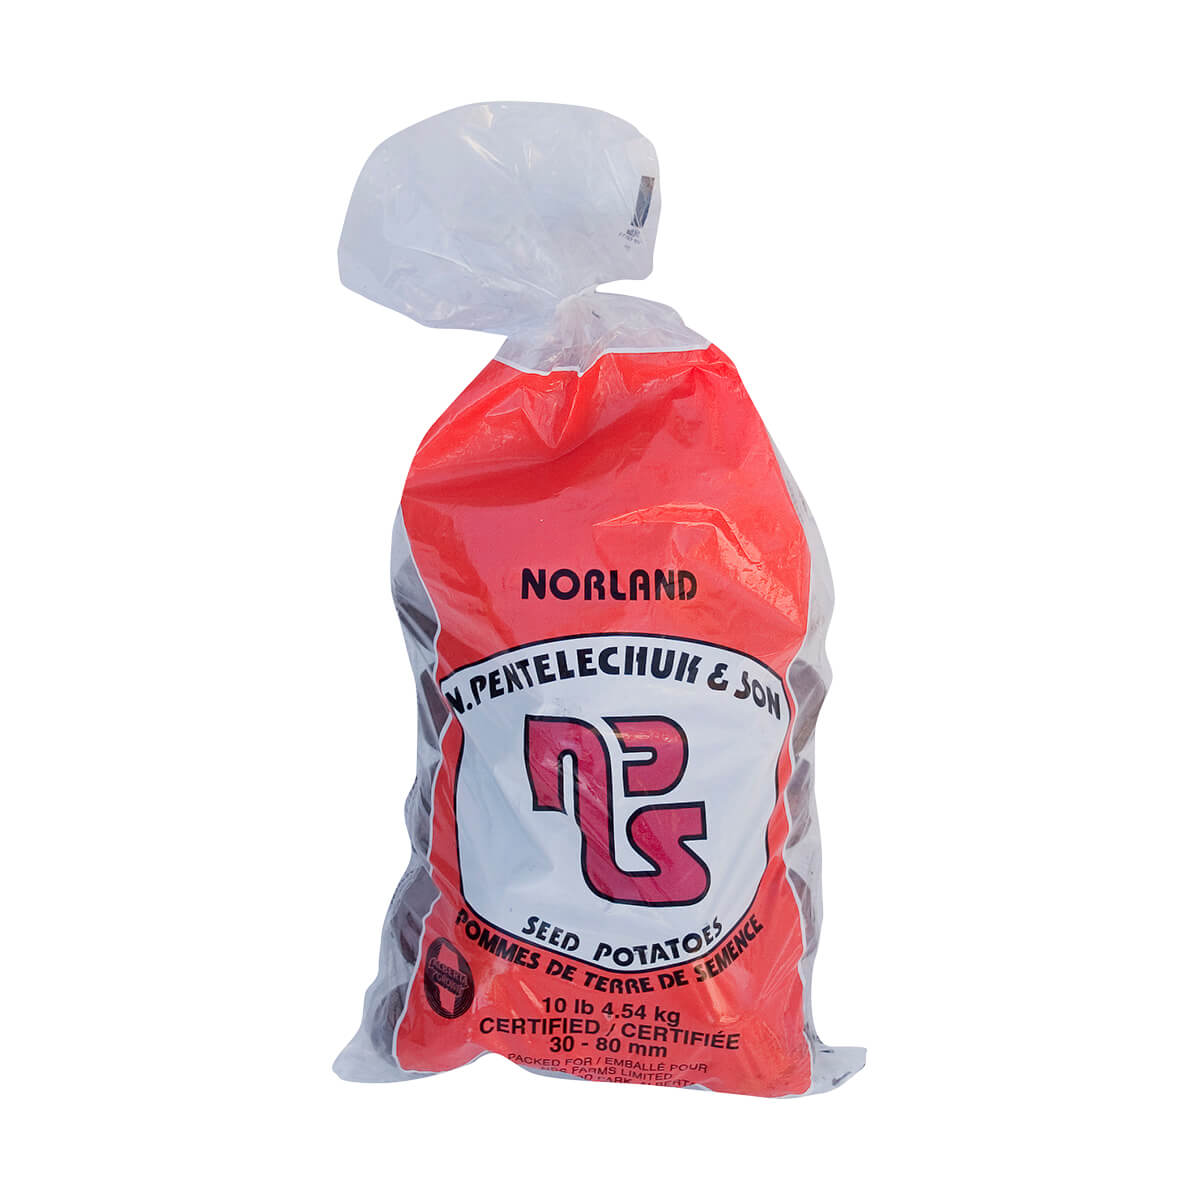 Norland Seed Potatoes - 10lb